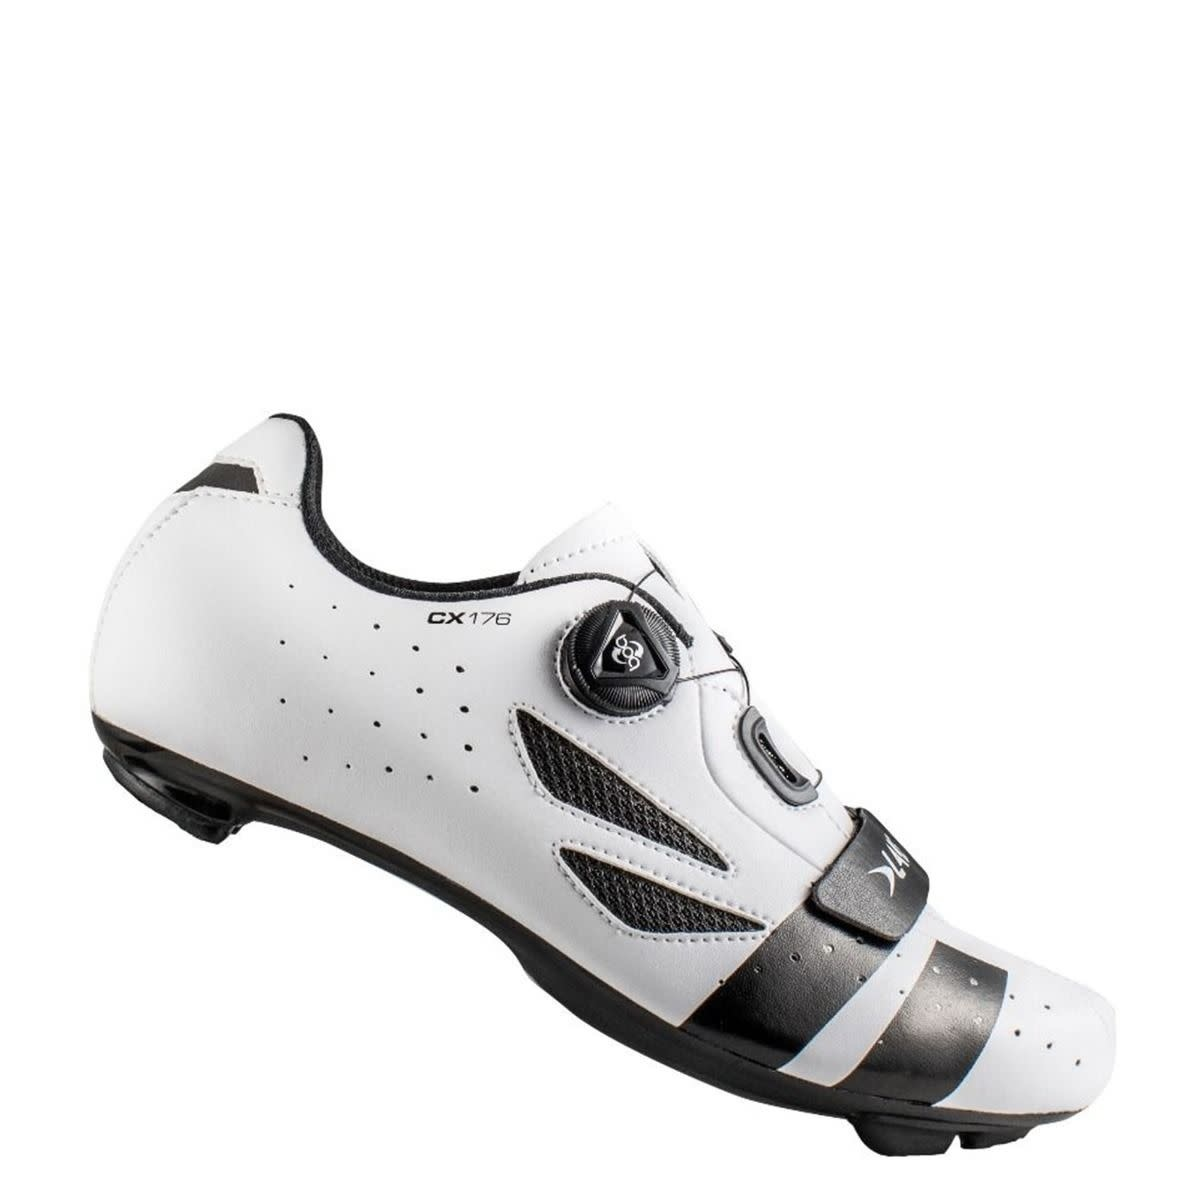 LAKE Lake CX176 White/Black 43 Cycling Shoes